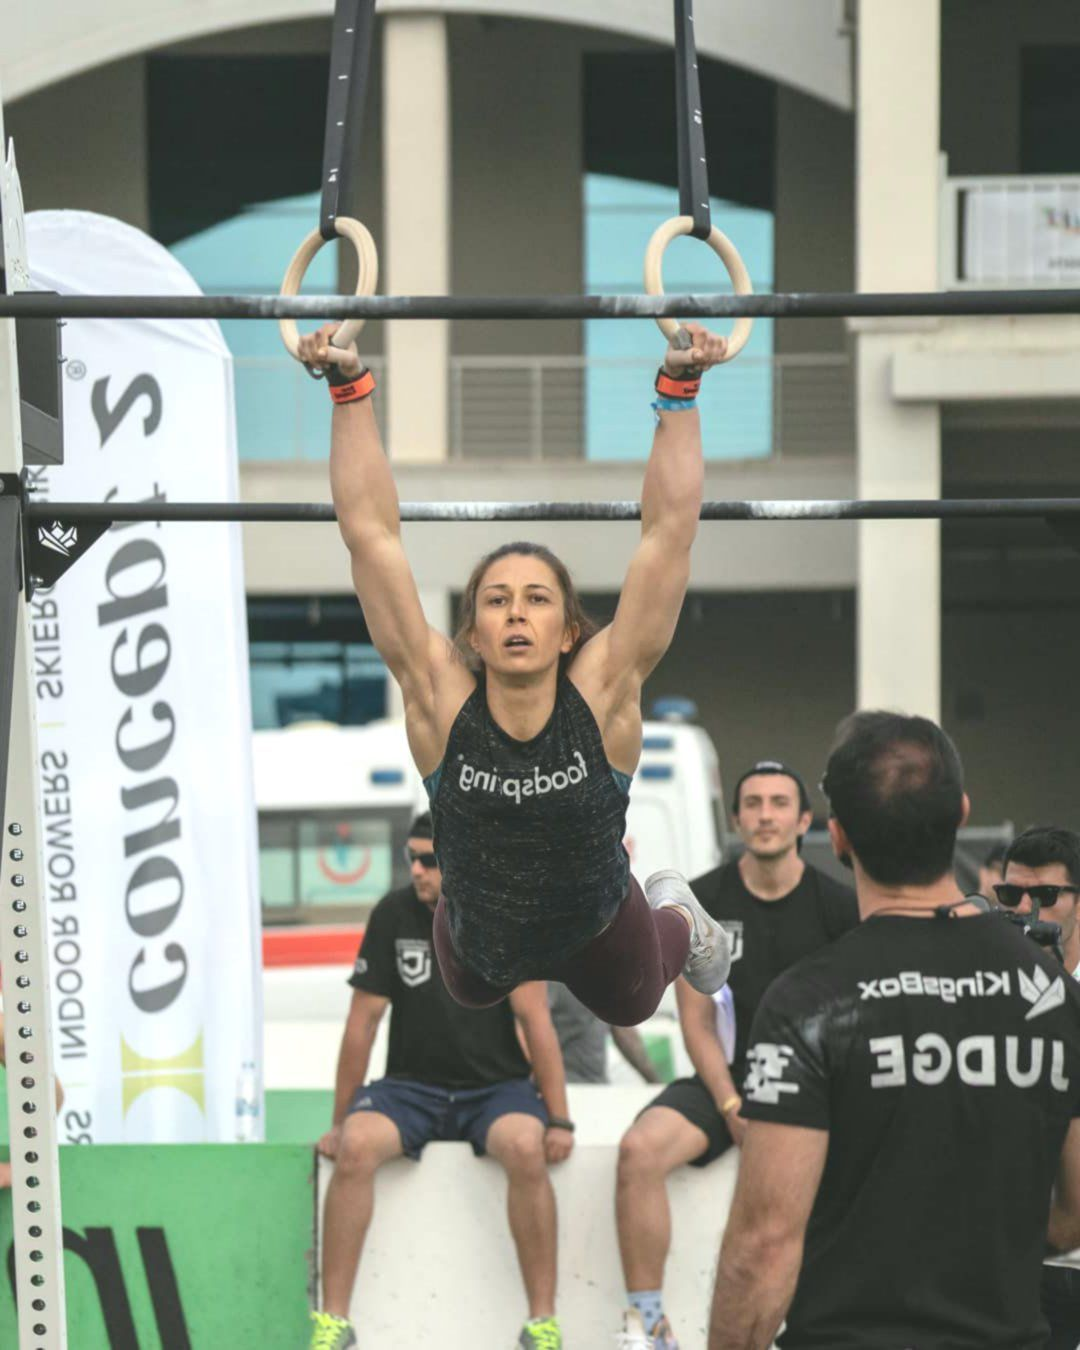 First Turkish Woman To Qualify For The Crossfit Games Finals Neyran Guneli Crossfit Games High Intensity Training Sports Tournaments